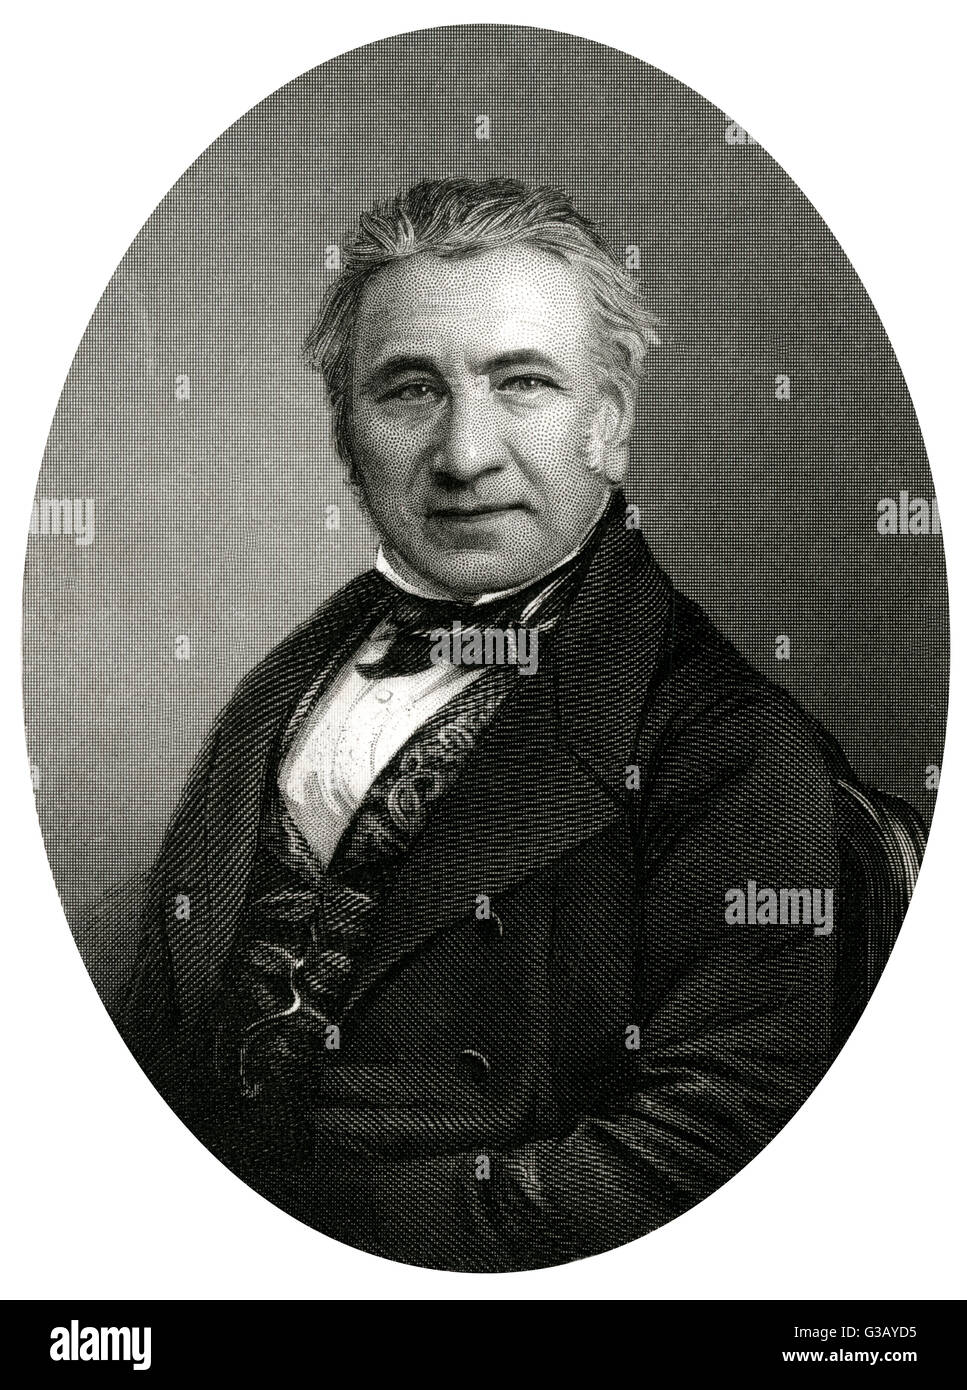 MARSHALL HALL  physiologist and physician        Date: 1790 - 1857 - Stock Image